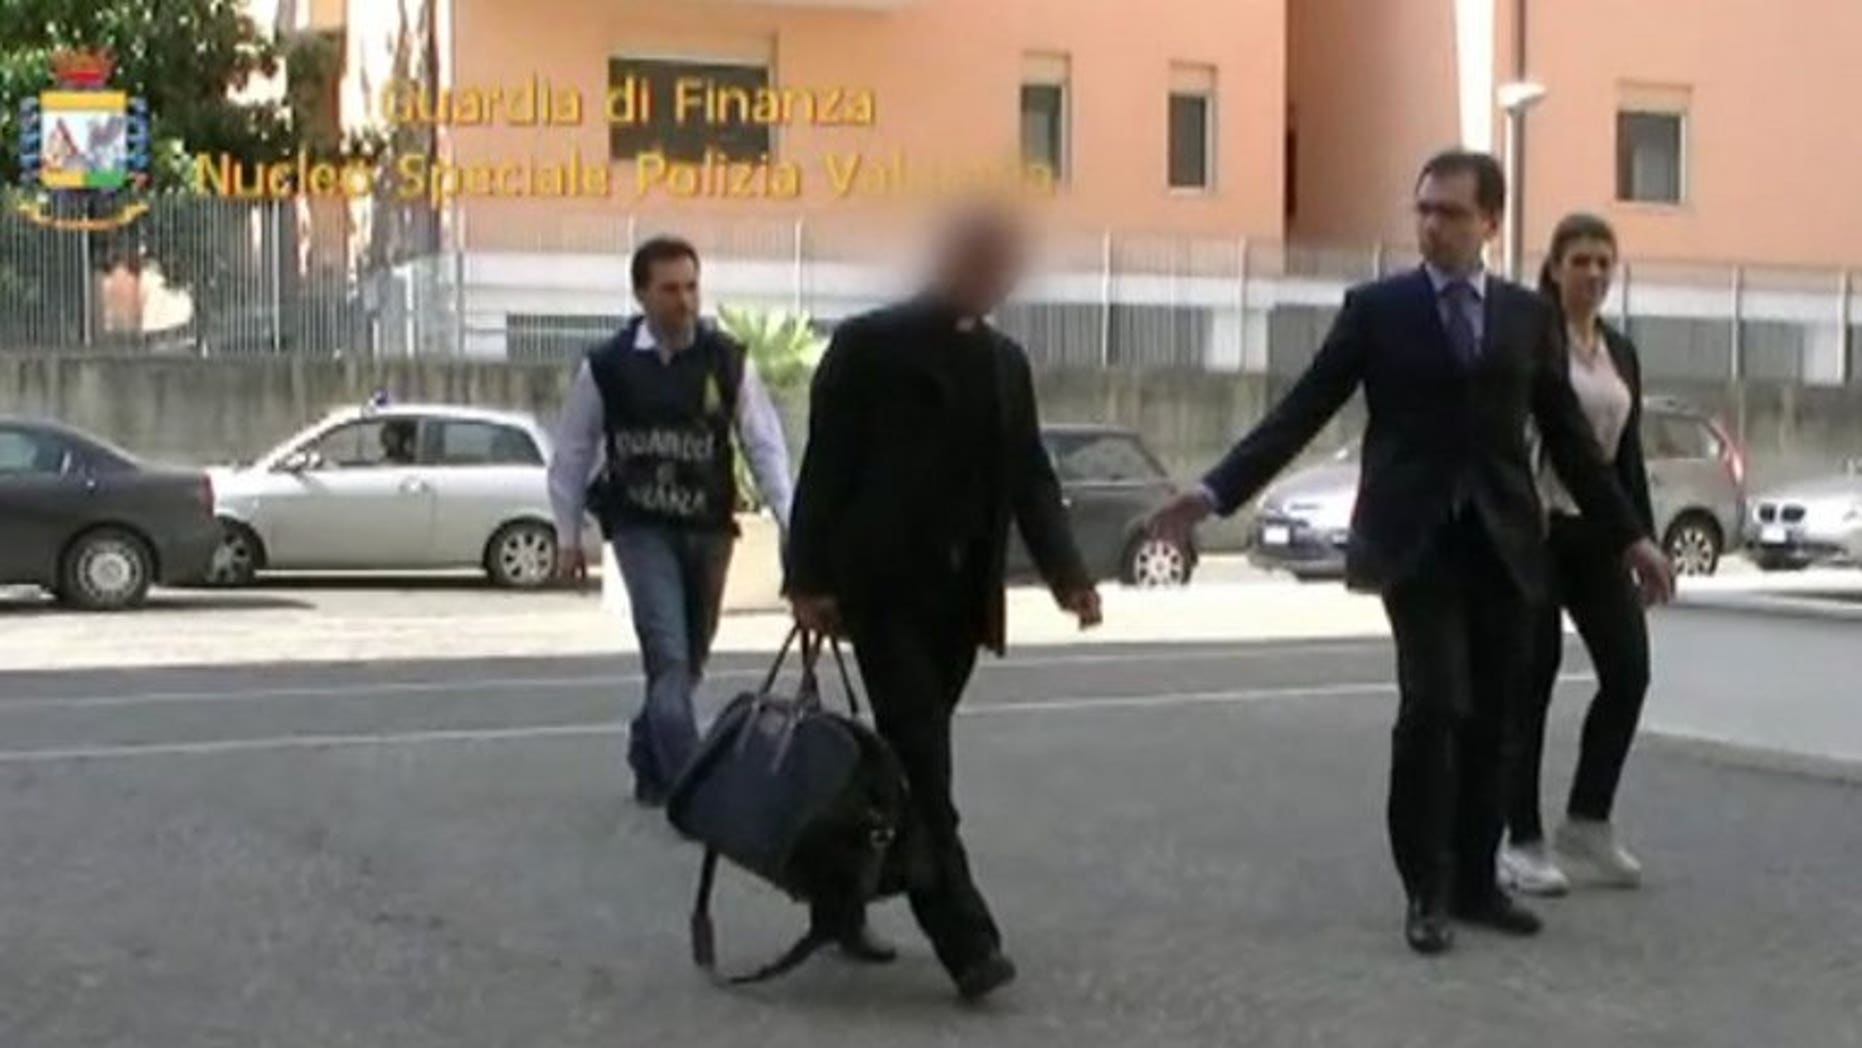 This handout picture taken from a video released by the Guardia di Finanzia Italian police on June 28, 2013 shows Nunzio Scarano (front left) being escorted by policemen after his arrest in Rome.